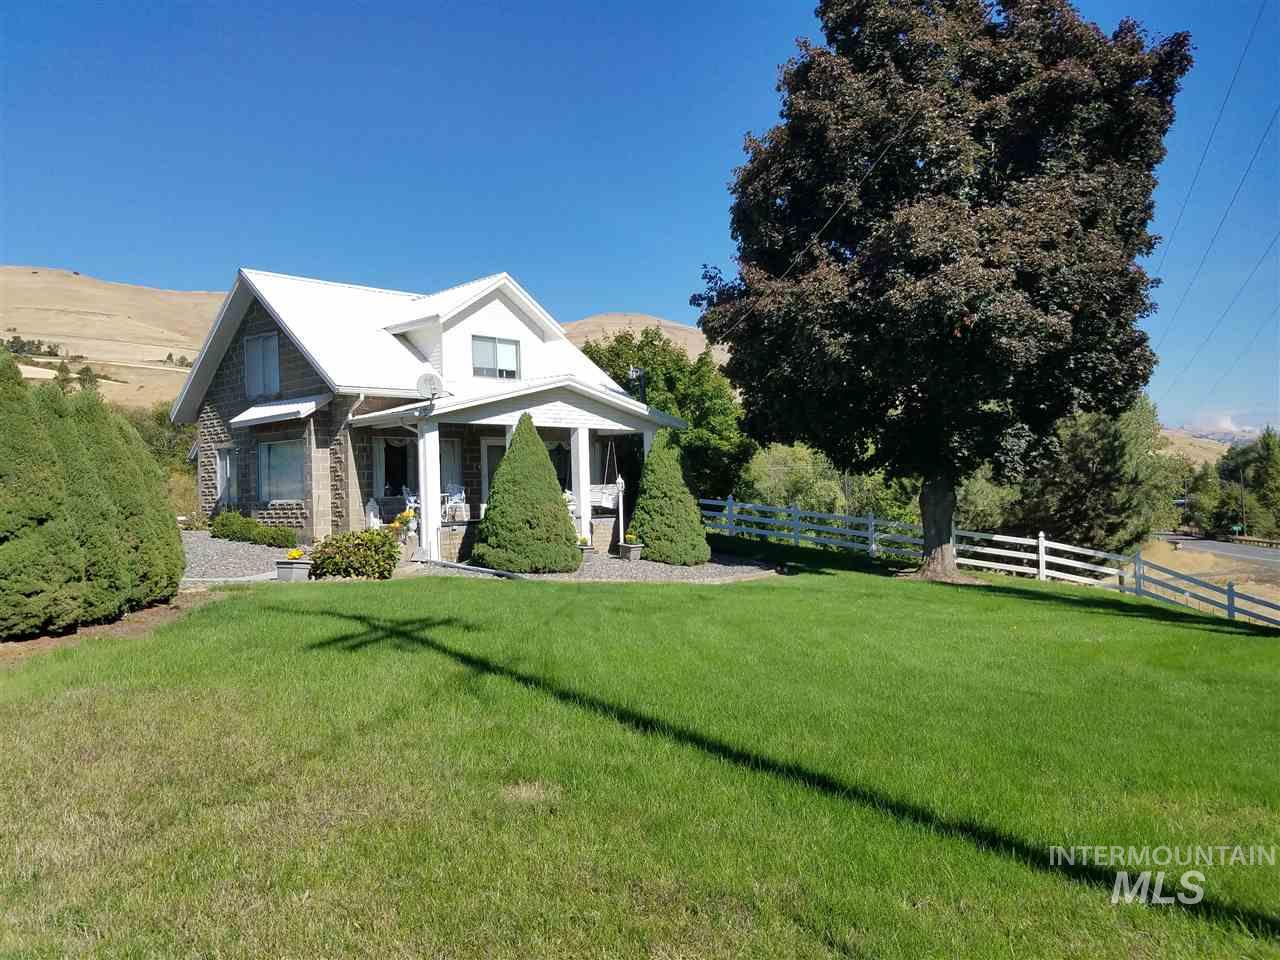 Single Family Home for Sale at 709 State Street 709 State Street Juliaetta, Idaho 83535